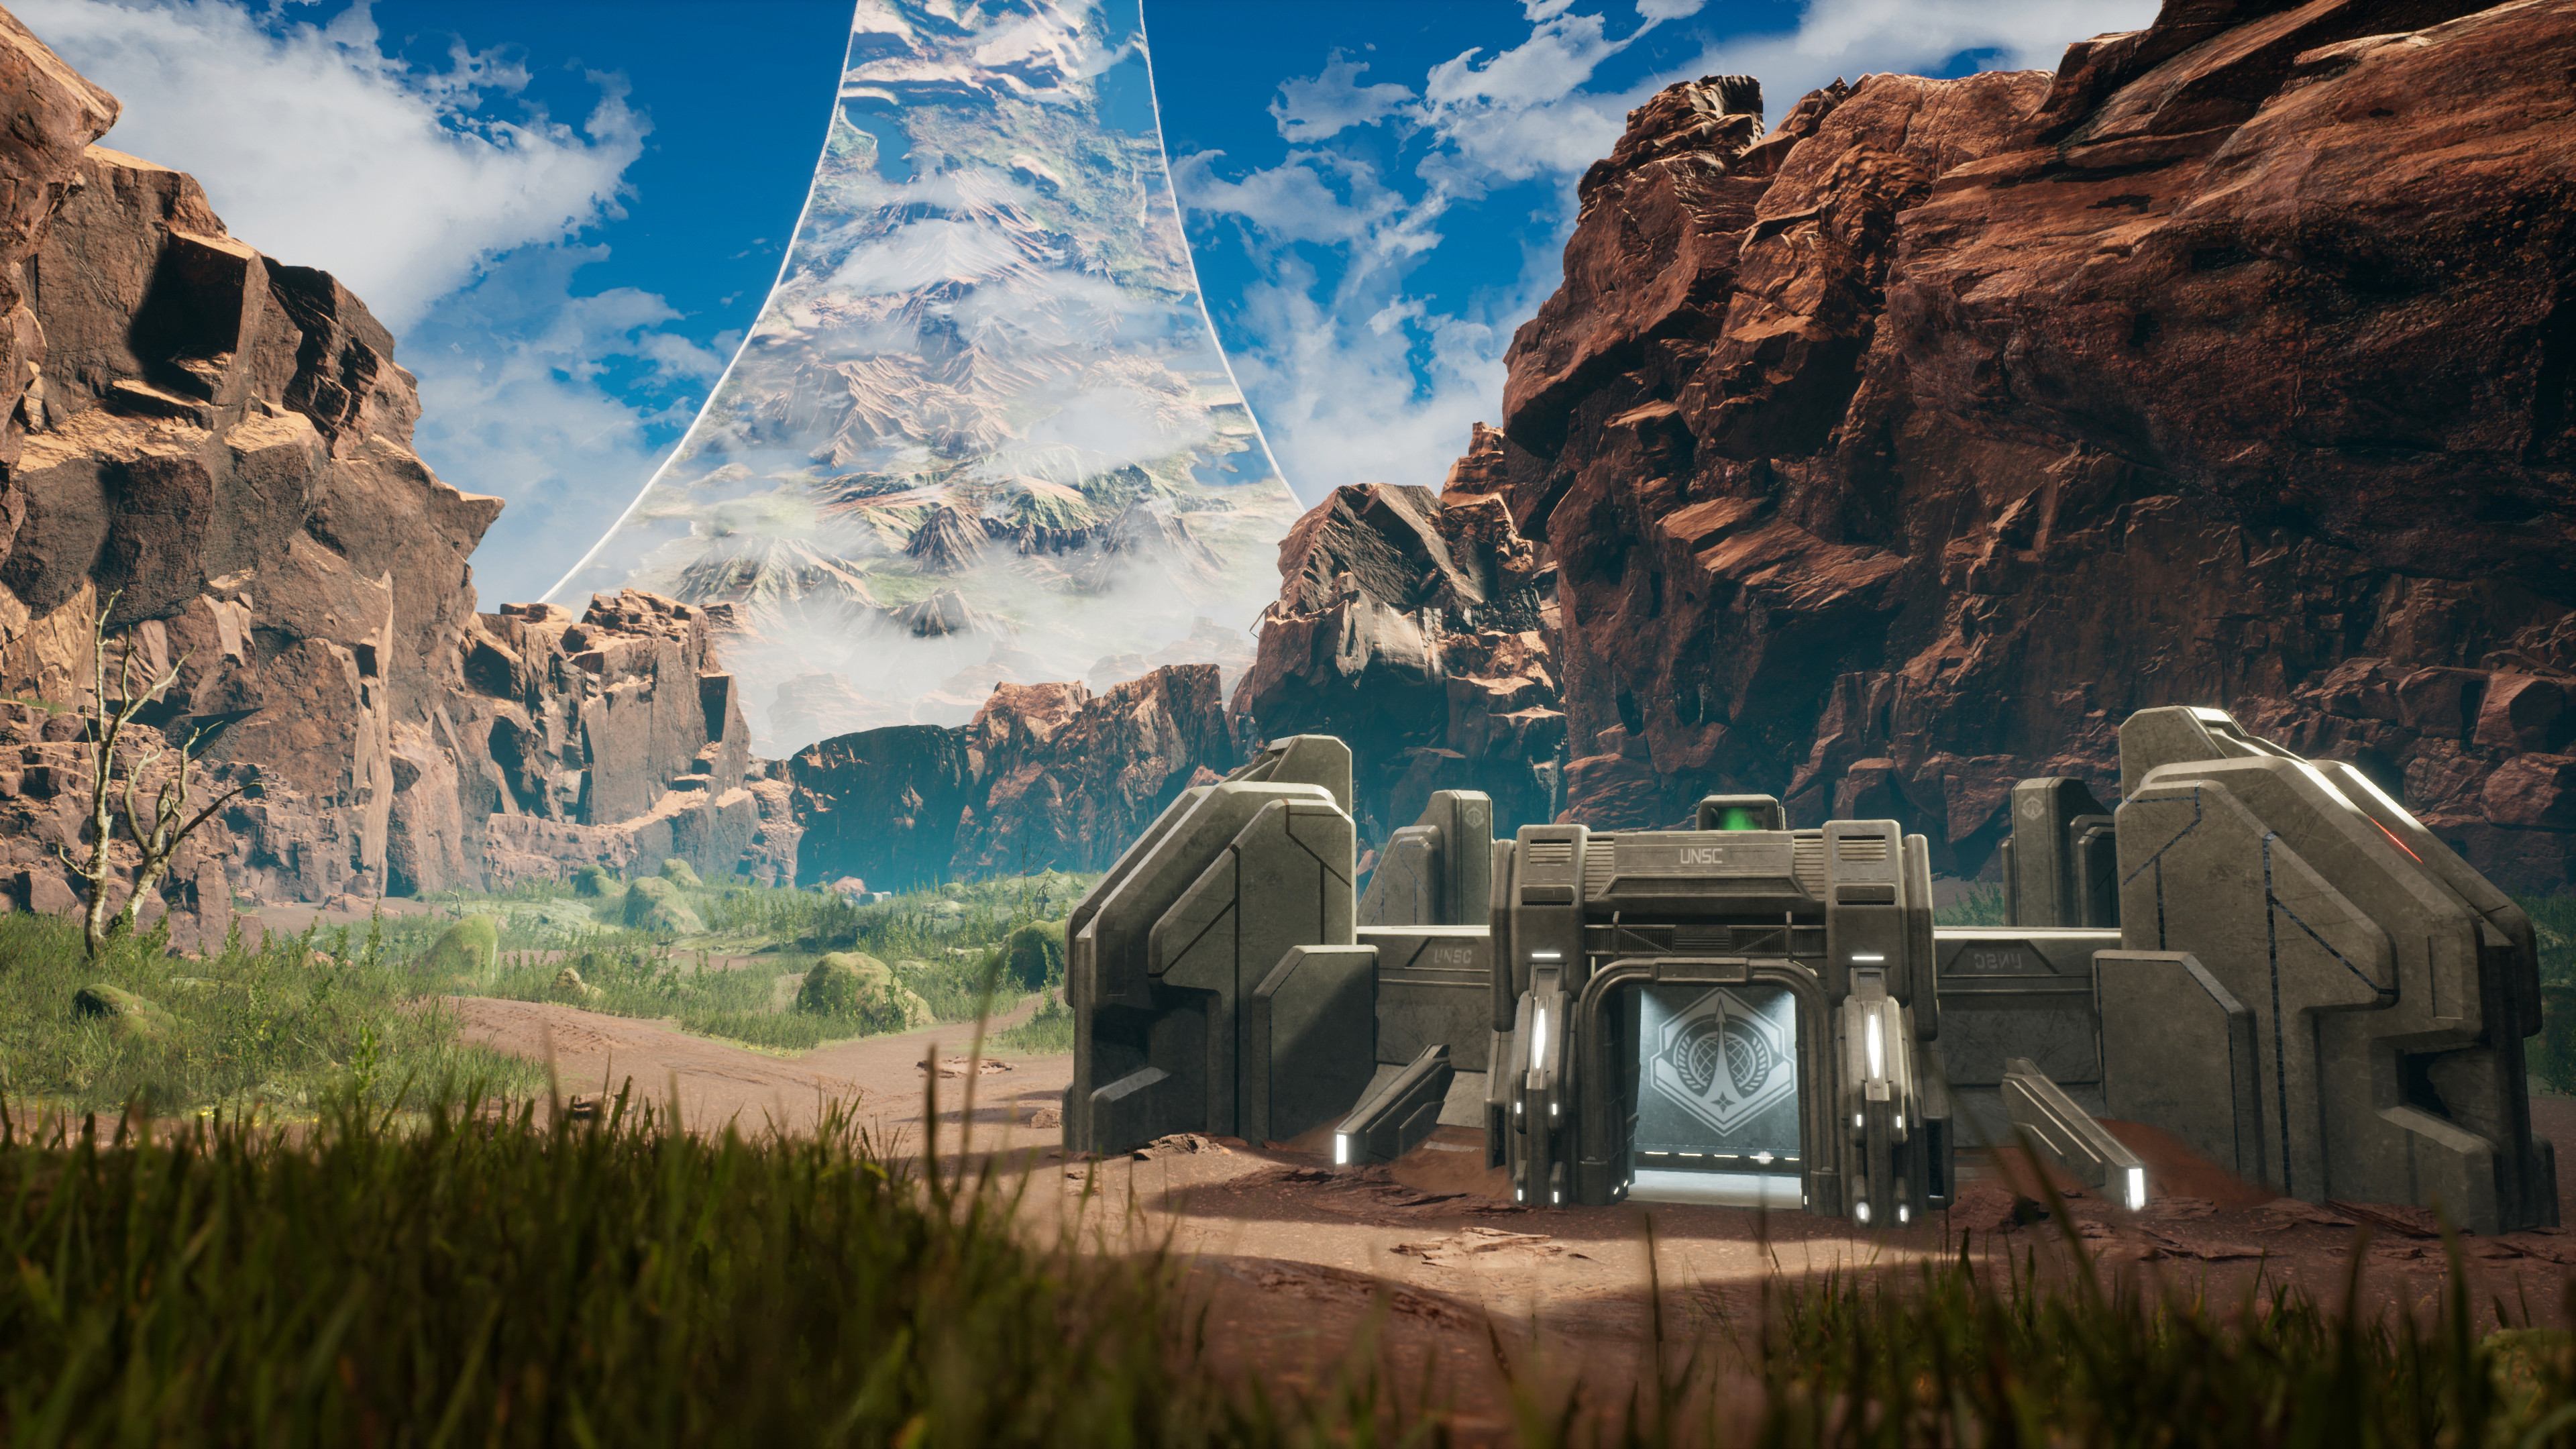 Blood Gulch is the first in a series of Halo: Recreation map's I will be working on. This one established a lot of new ground for me and was a huge learning process. My next map will be one we have not seen remade in any official capacity.